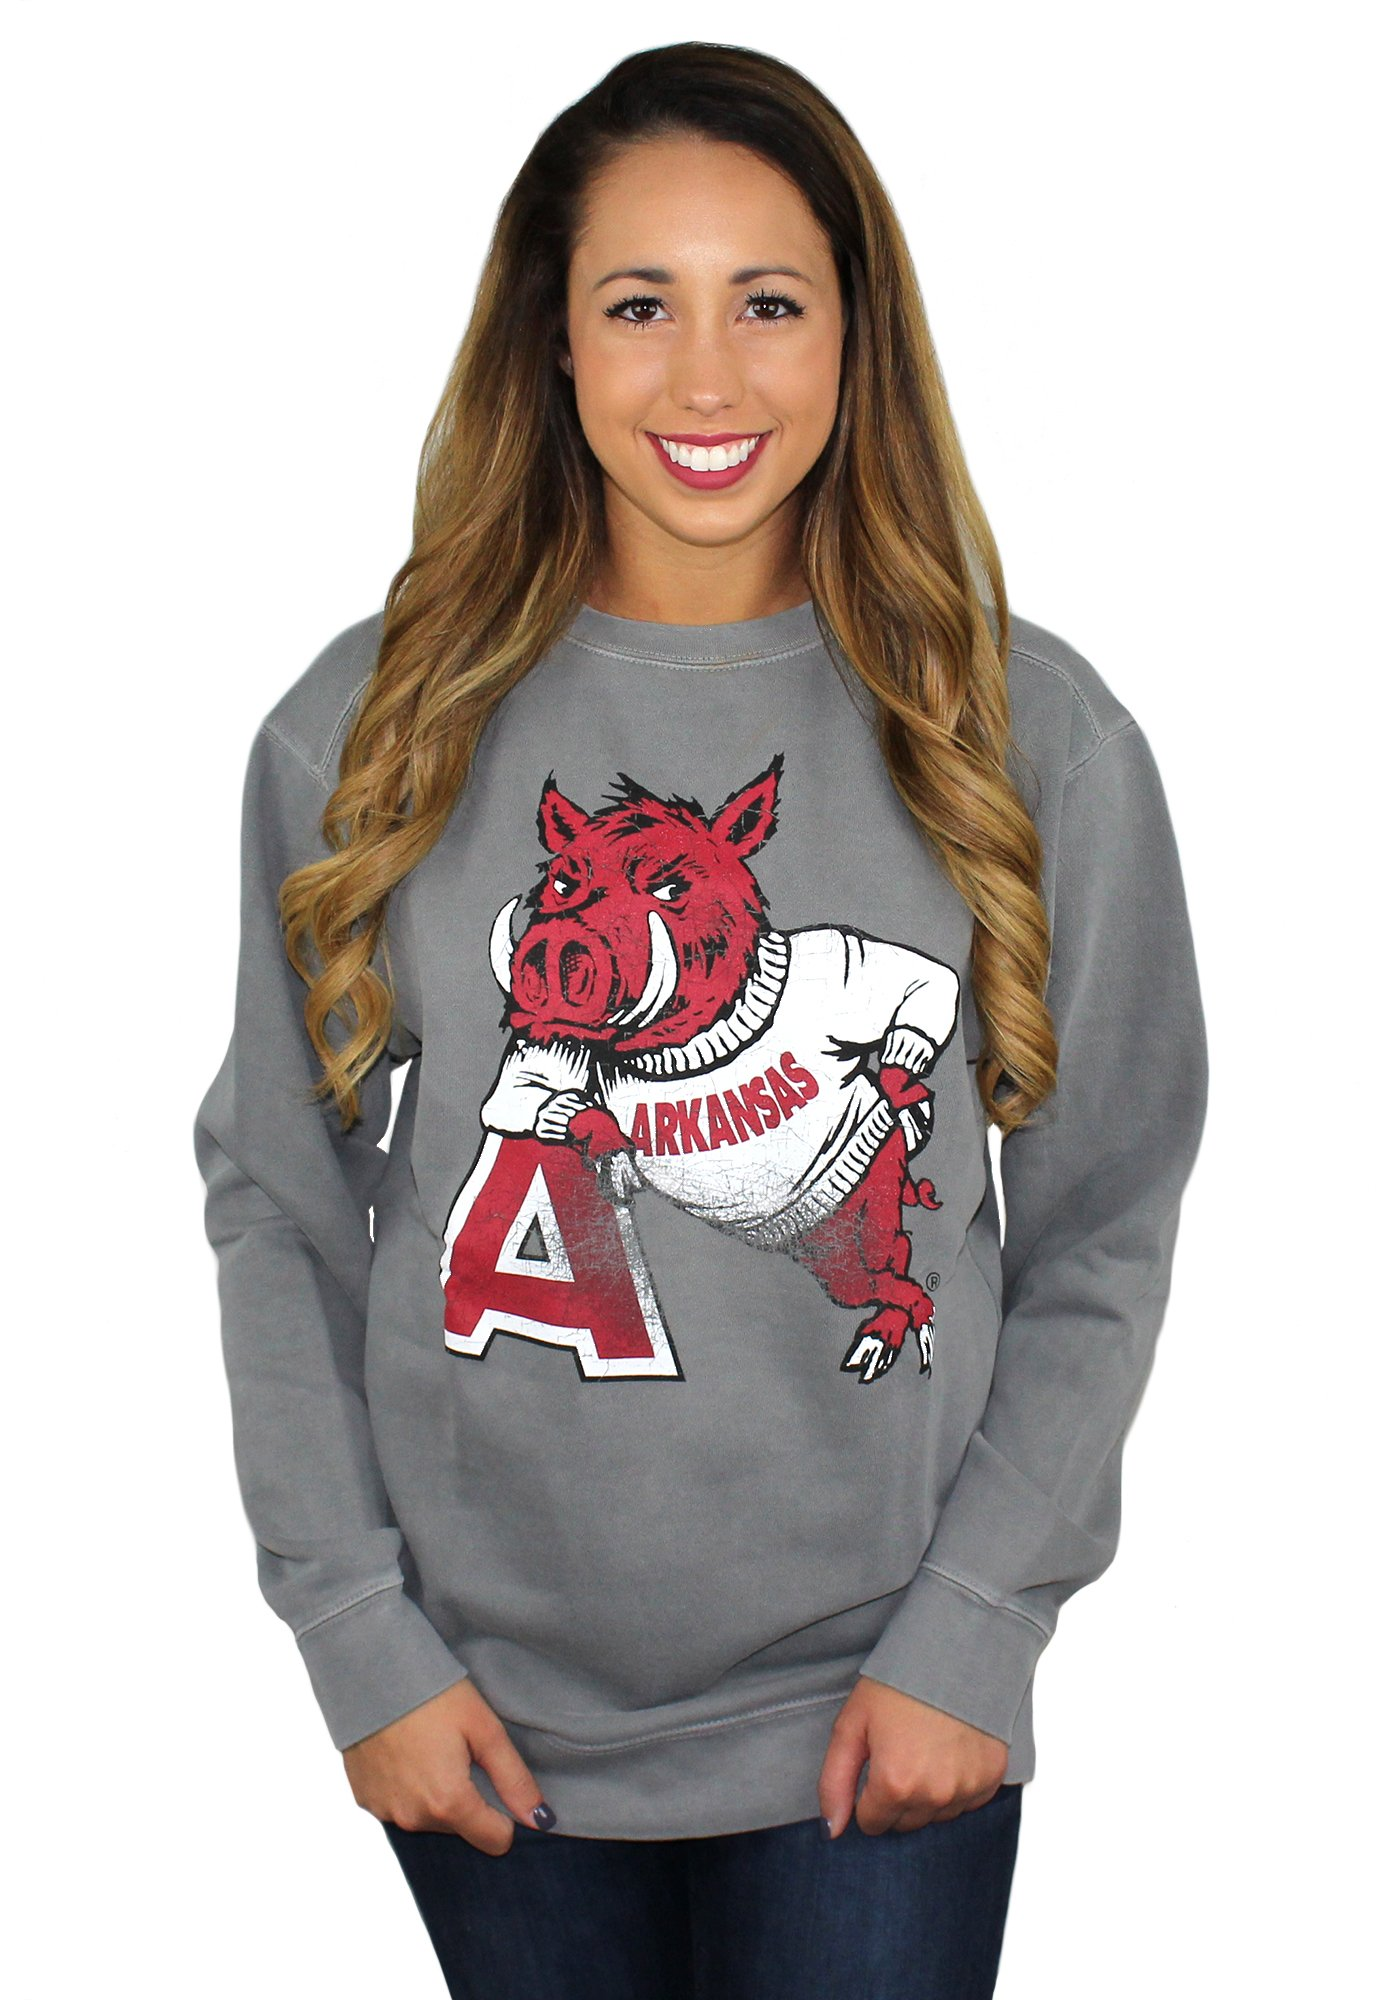 HOG LEANING ON 'A' SWEATSHIRT